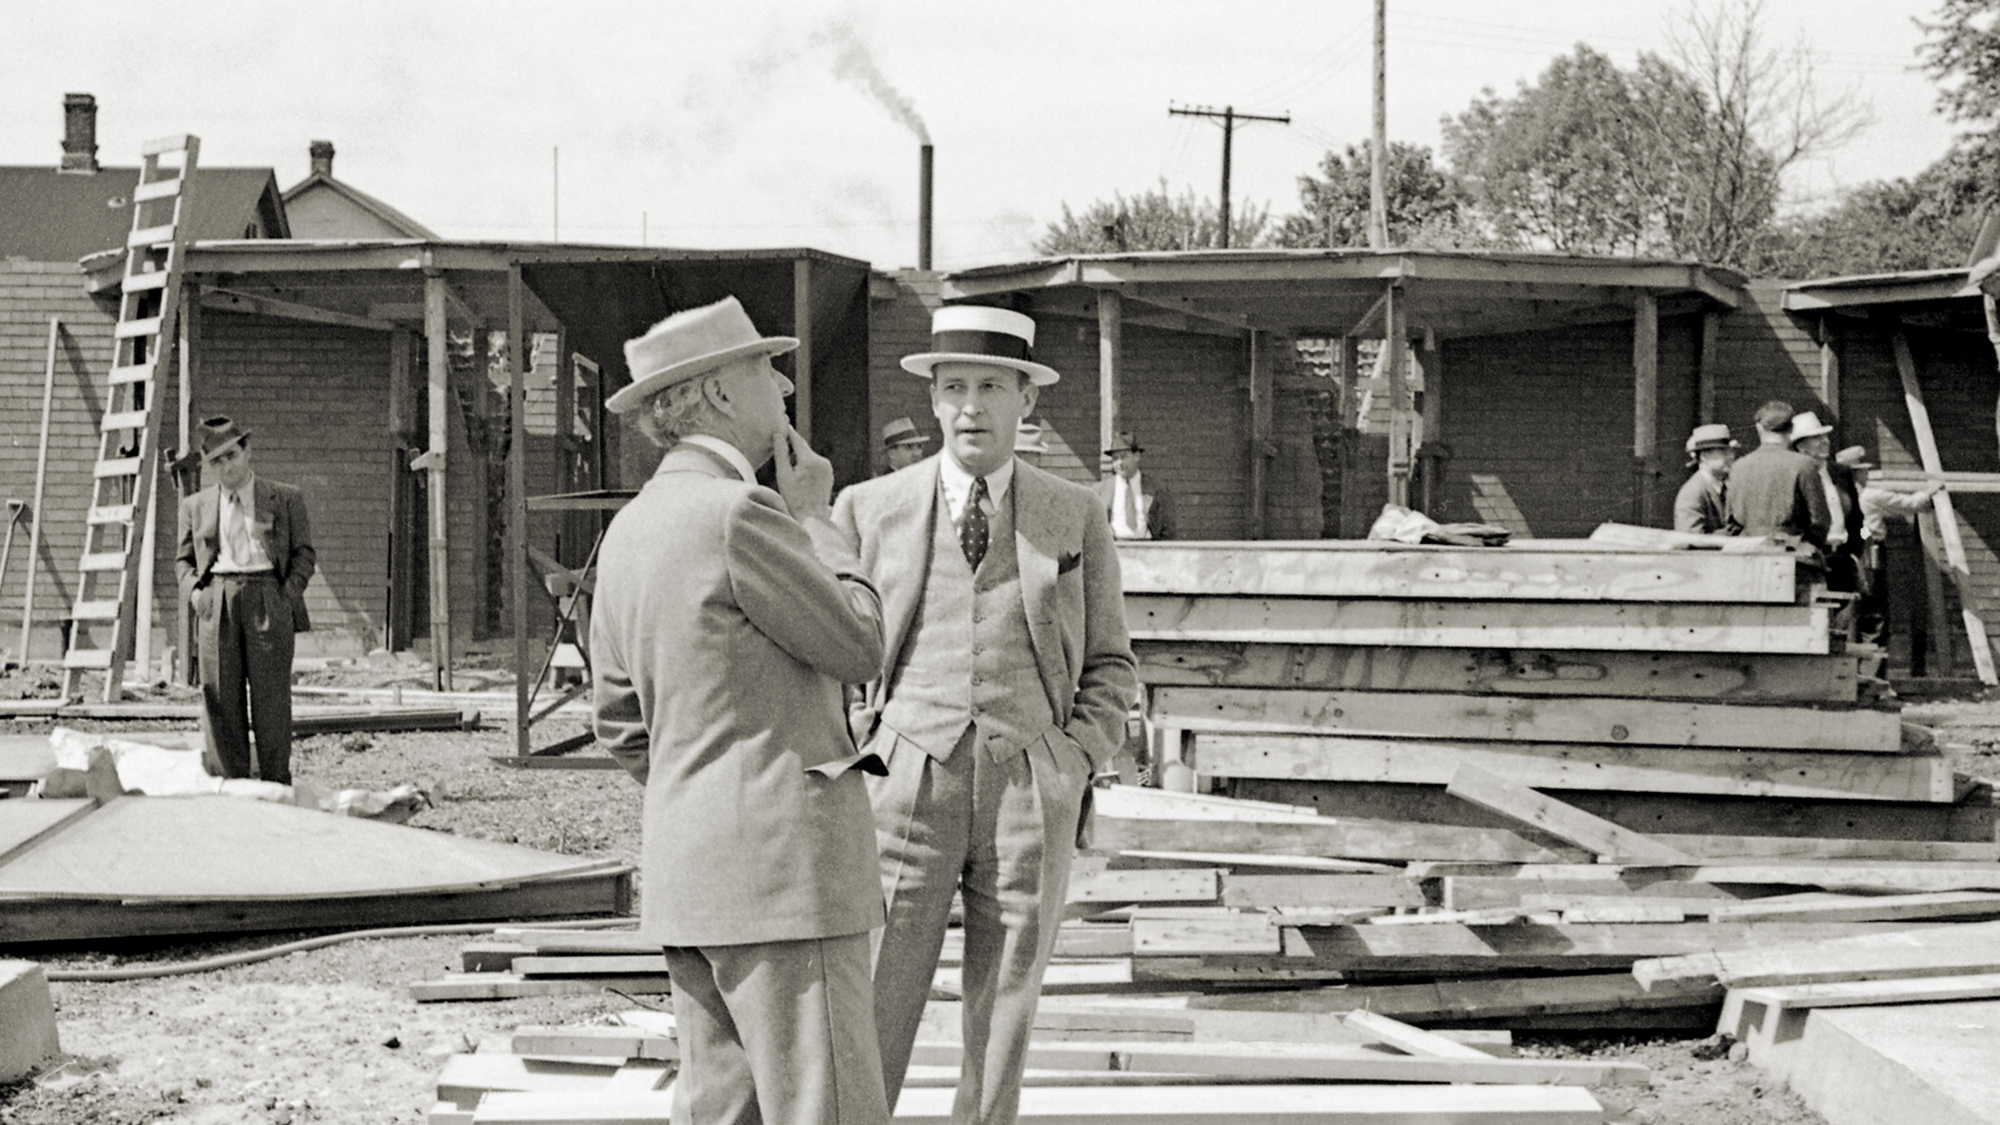 H.F. Johnson Jr. e Frank Lloyd Wright nella sede centrale di SC Johnson